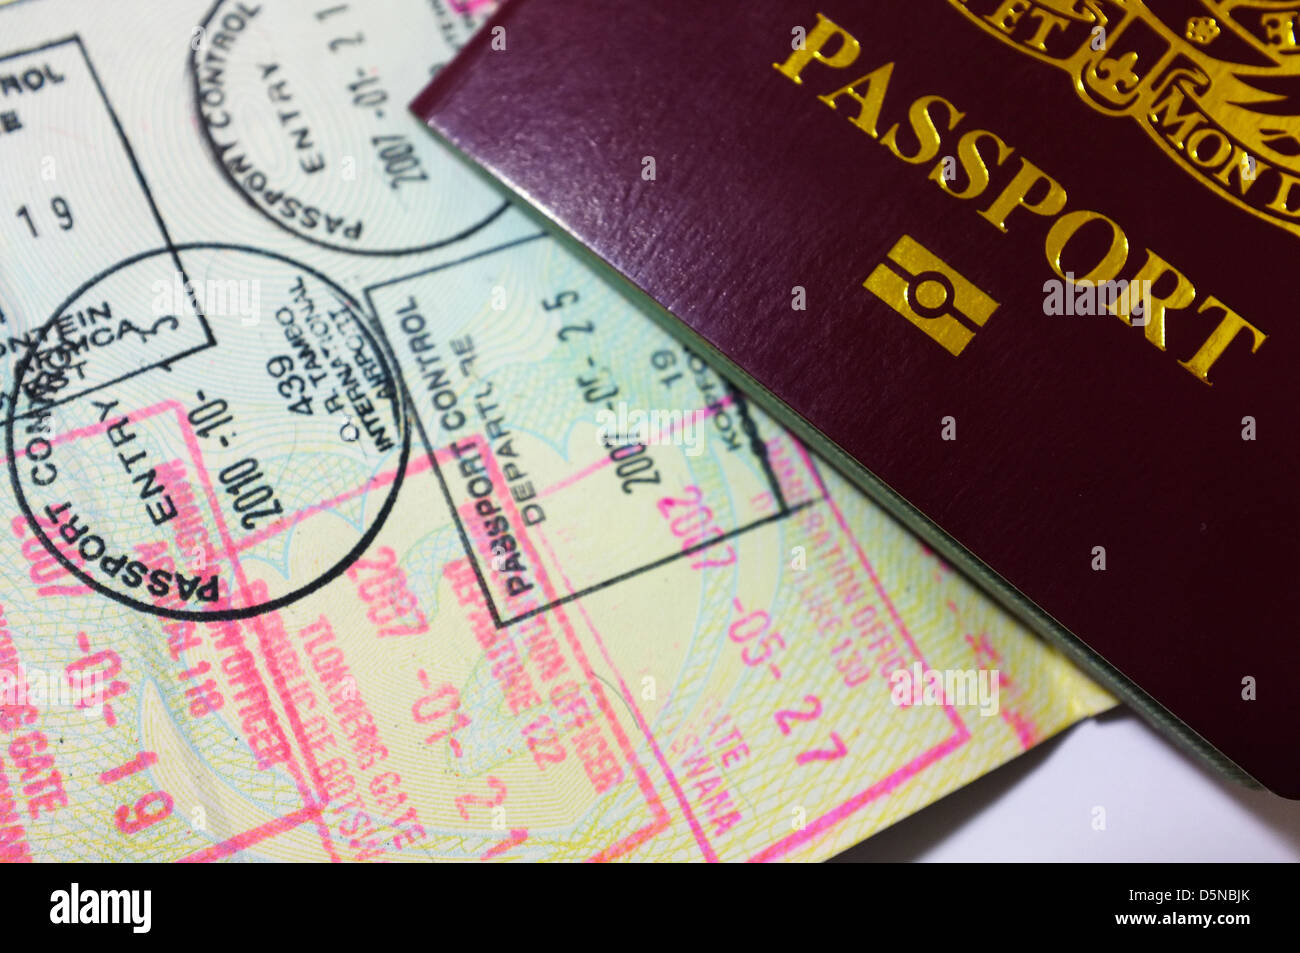 A British passport on top of a heavily stamped visa page. - Stock Image